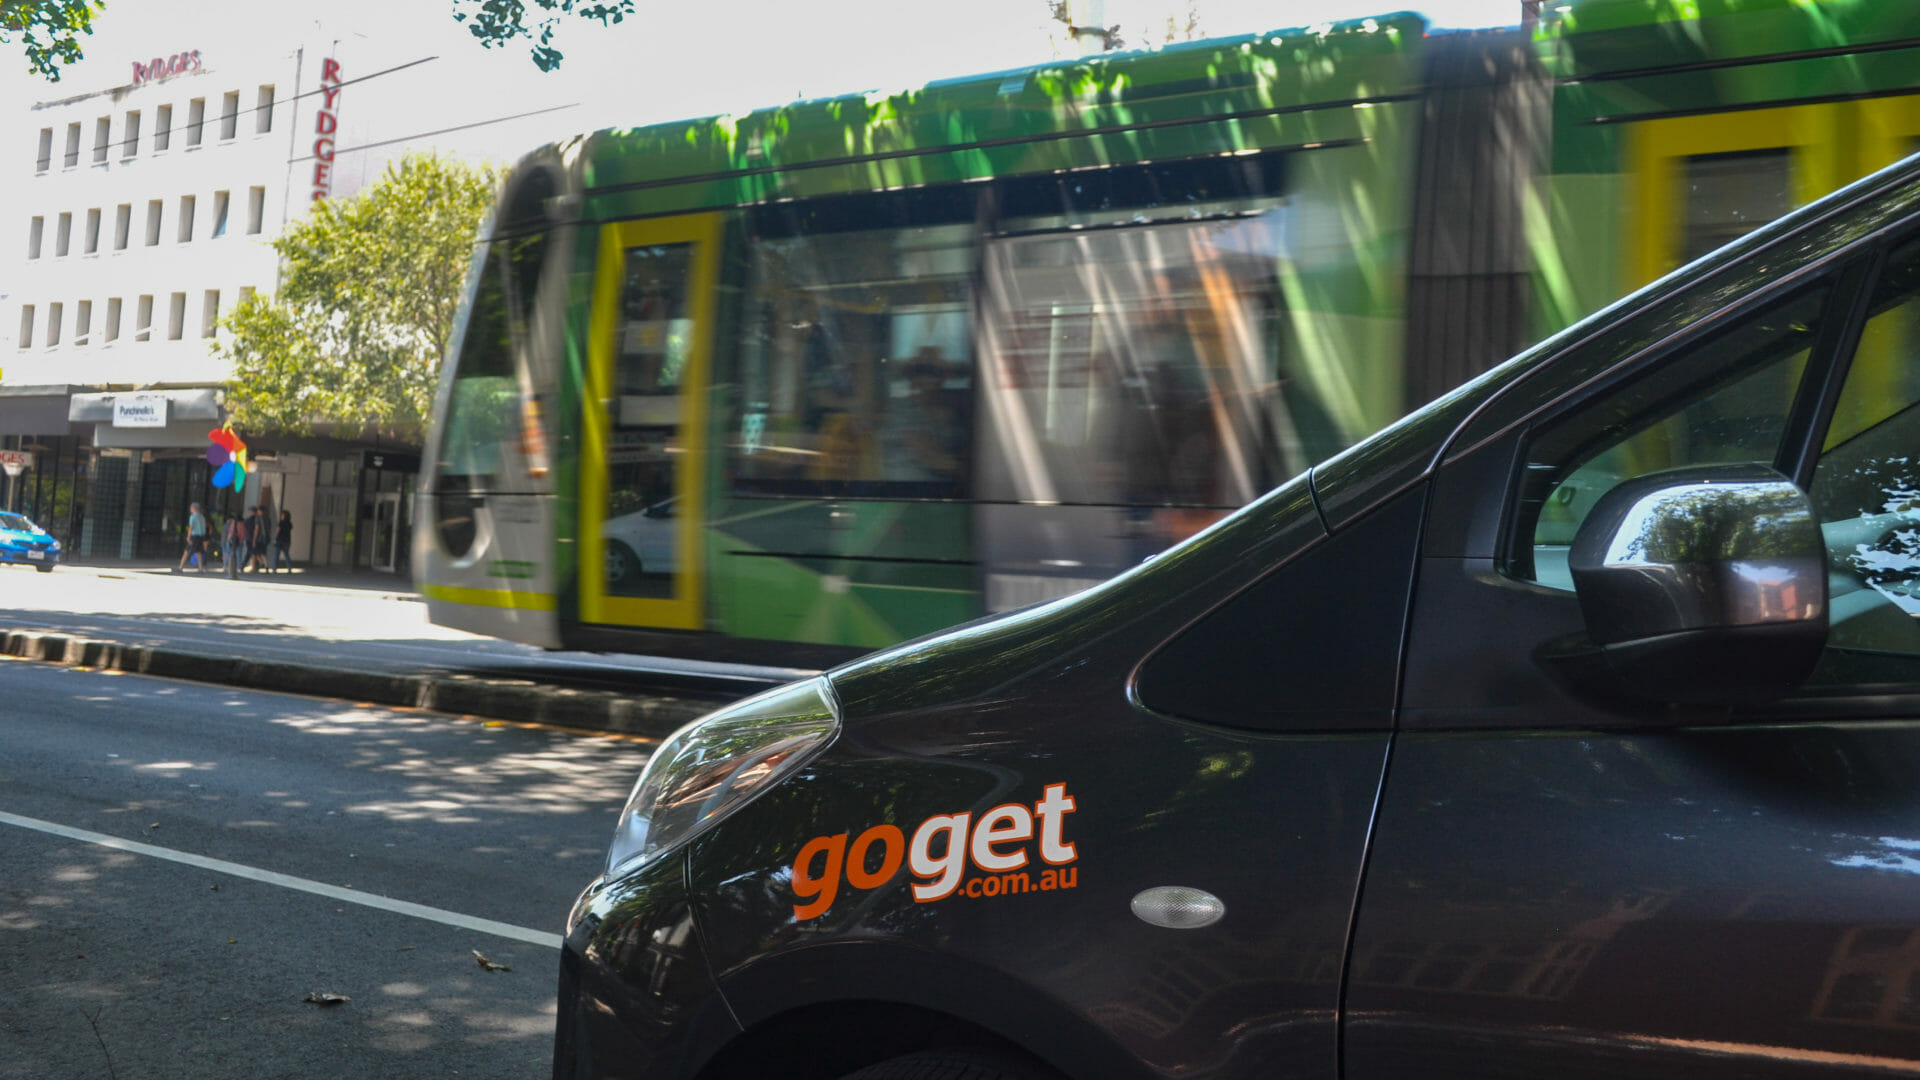 The side of a parked GoGet car share vehicle, with a moving Melbourne tram in the background